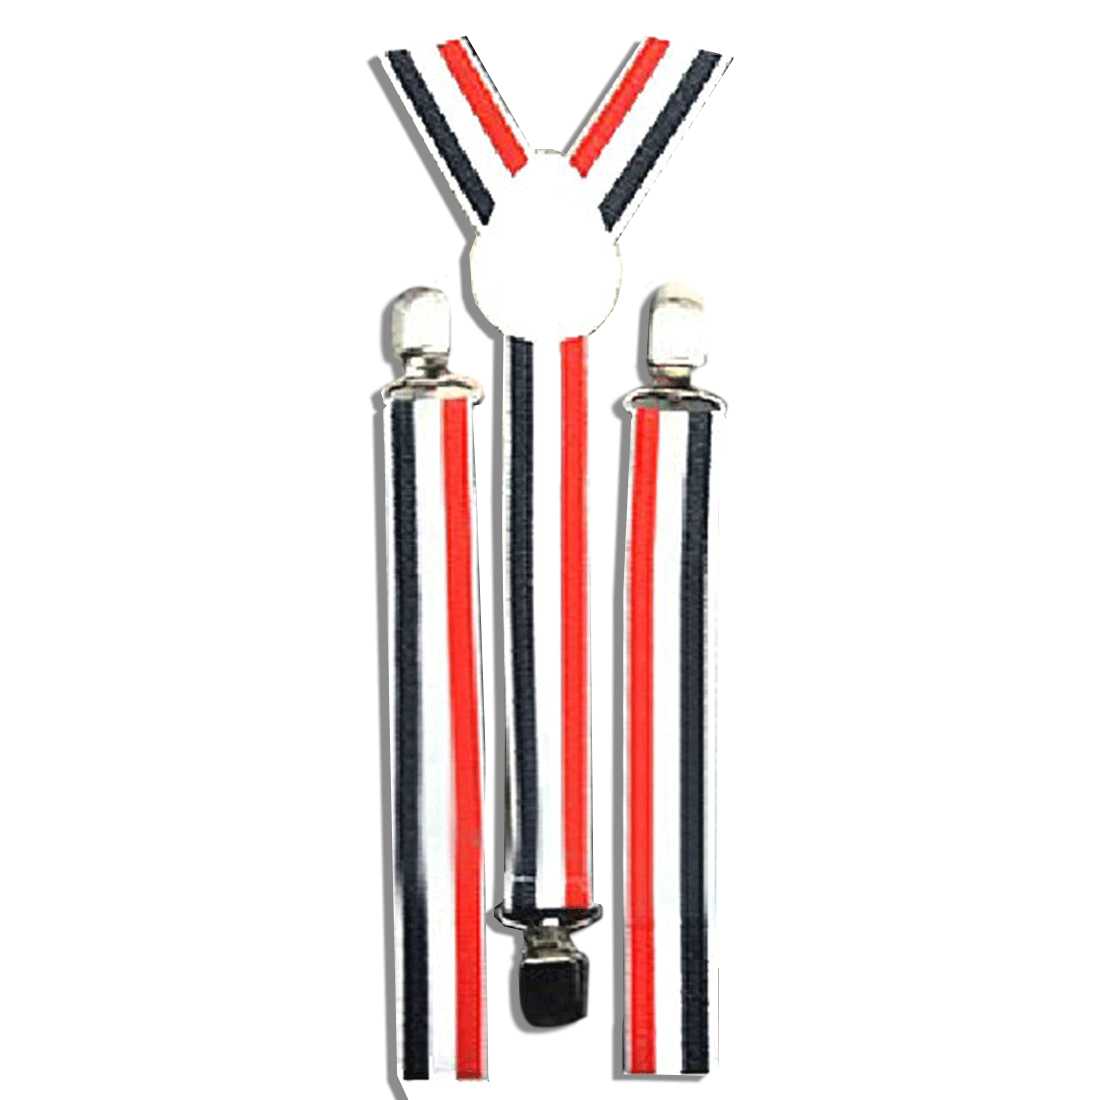 New Mens Womens Unisex Clip-on Suspenders Elastic Y-Shape Adjustable Strap Dress Accessories Strap Apparel Hot